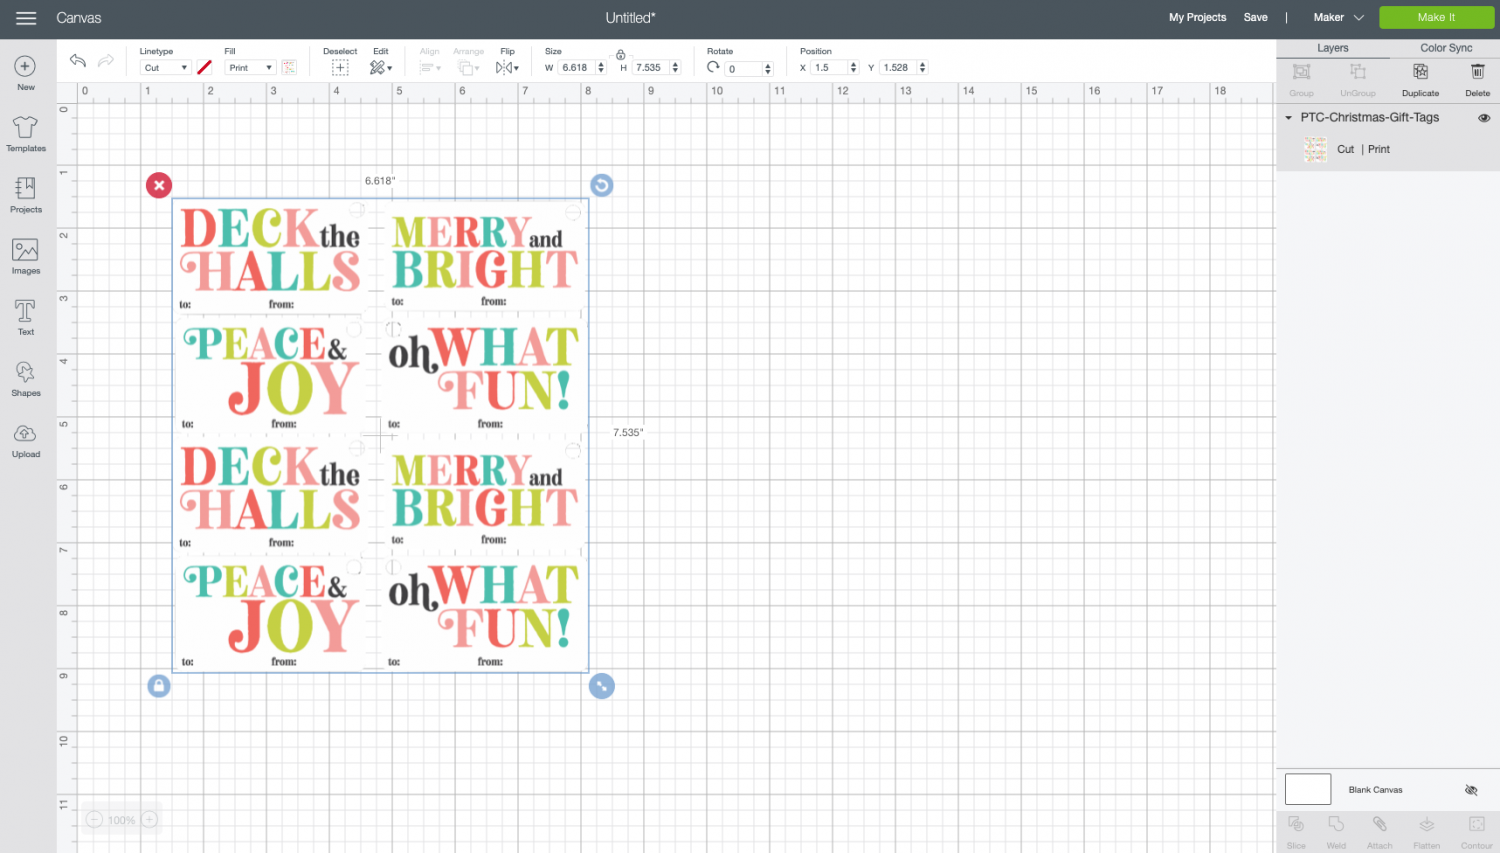 Cricut Design Space: image on canvas